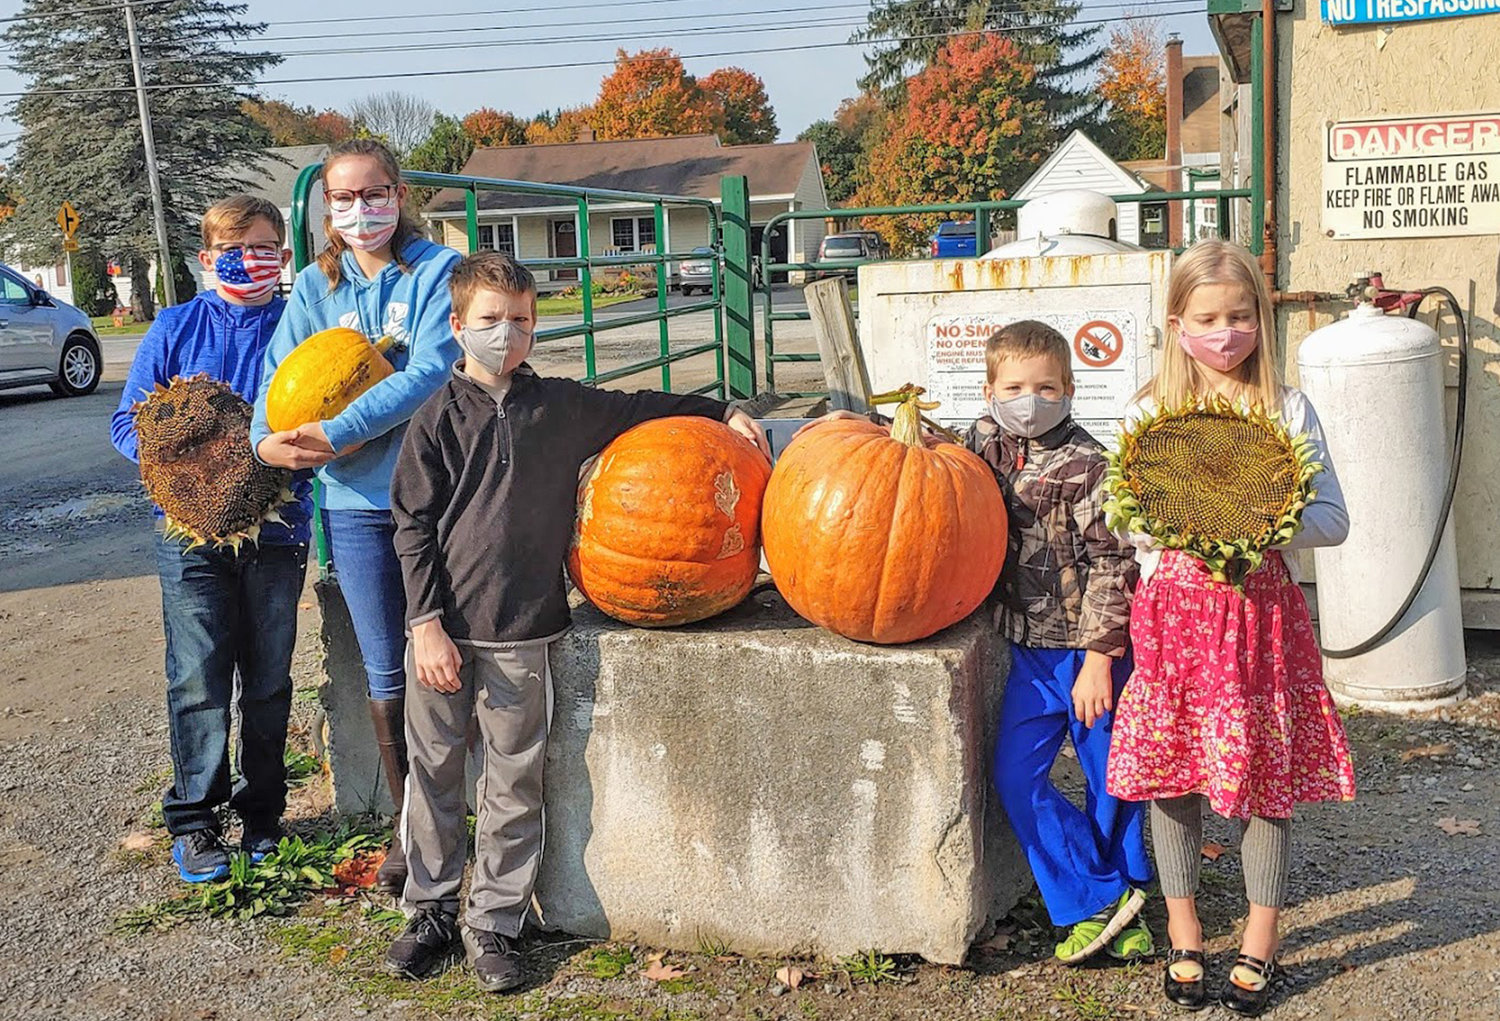 WINNERS — From left, 1st Place Sunflower Griffin Pritchard, 1st Place Pumpkin Delanie Pritchard, 1st Place Pumpkin Caleb Beers, 2nd Place Pumpkin Elijah Beers, 2nd Place Sunflower Melanie Beers.